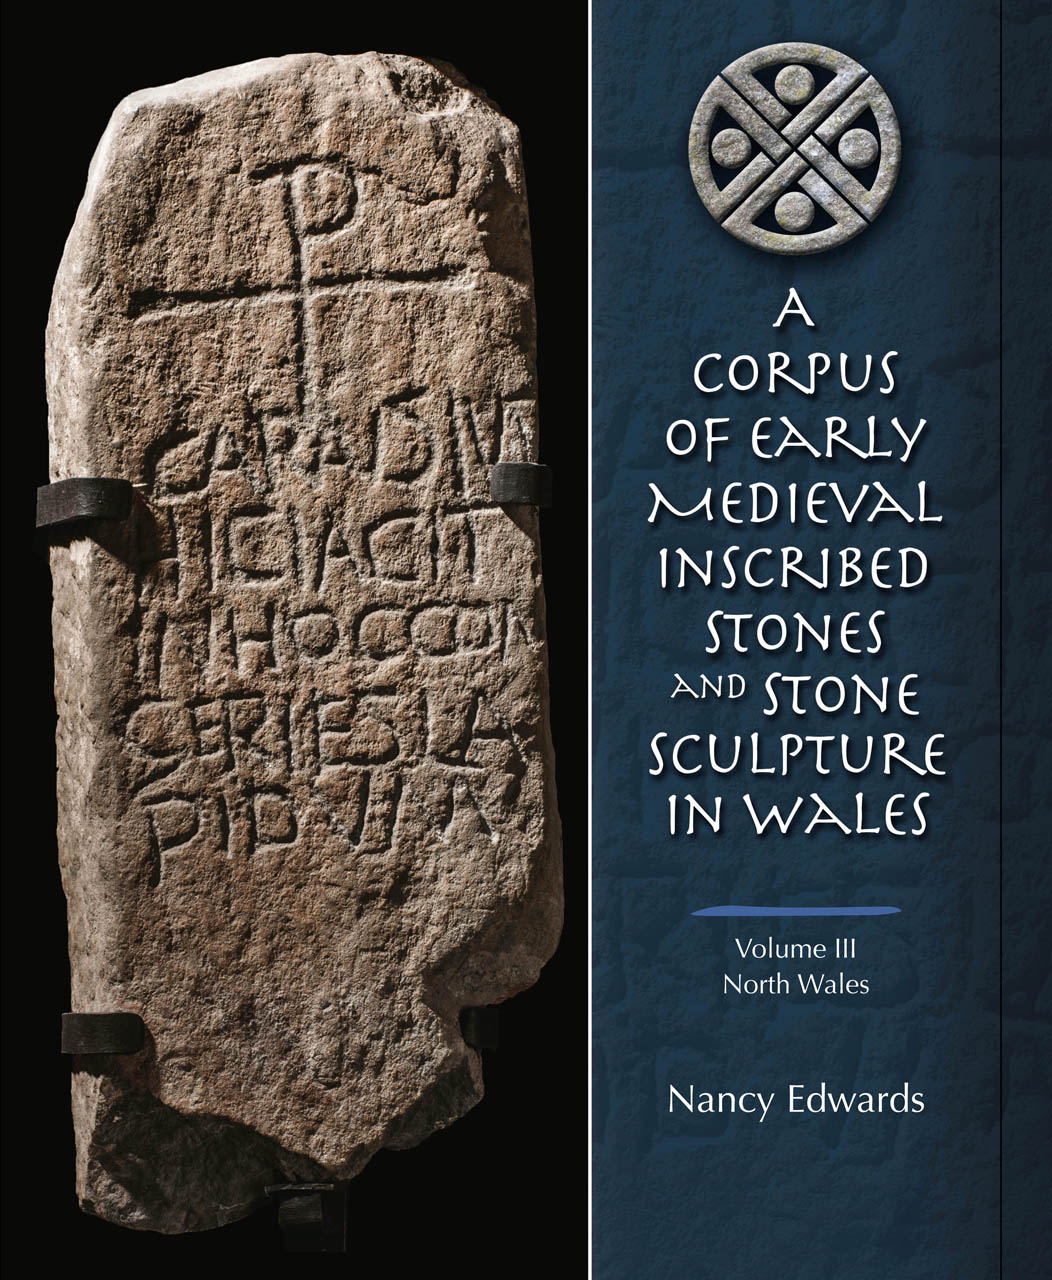 A Corpus of Early Medieval Inscribed Stones and Stone Sculptures in Wales: Volume 3, North Wales